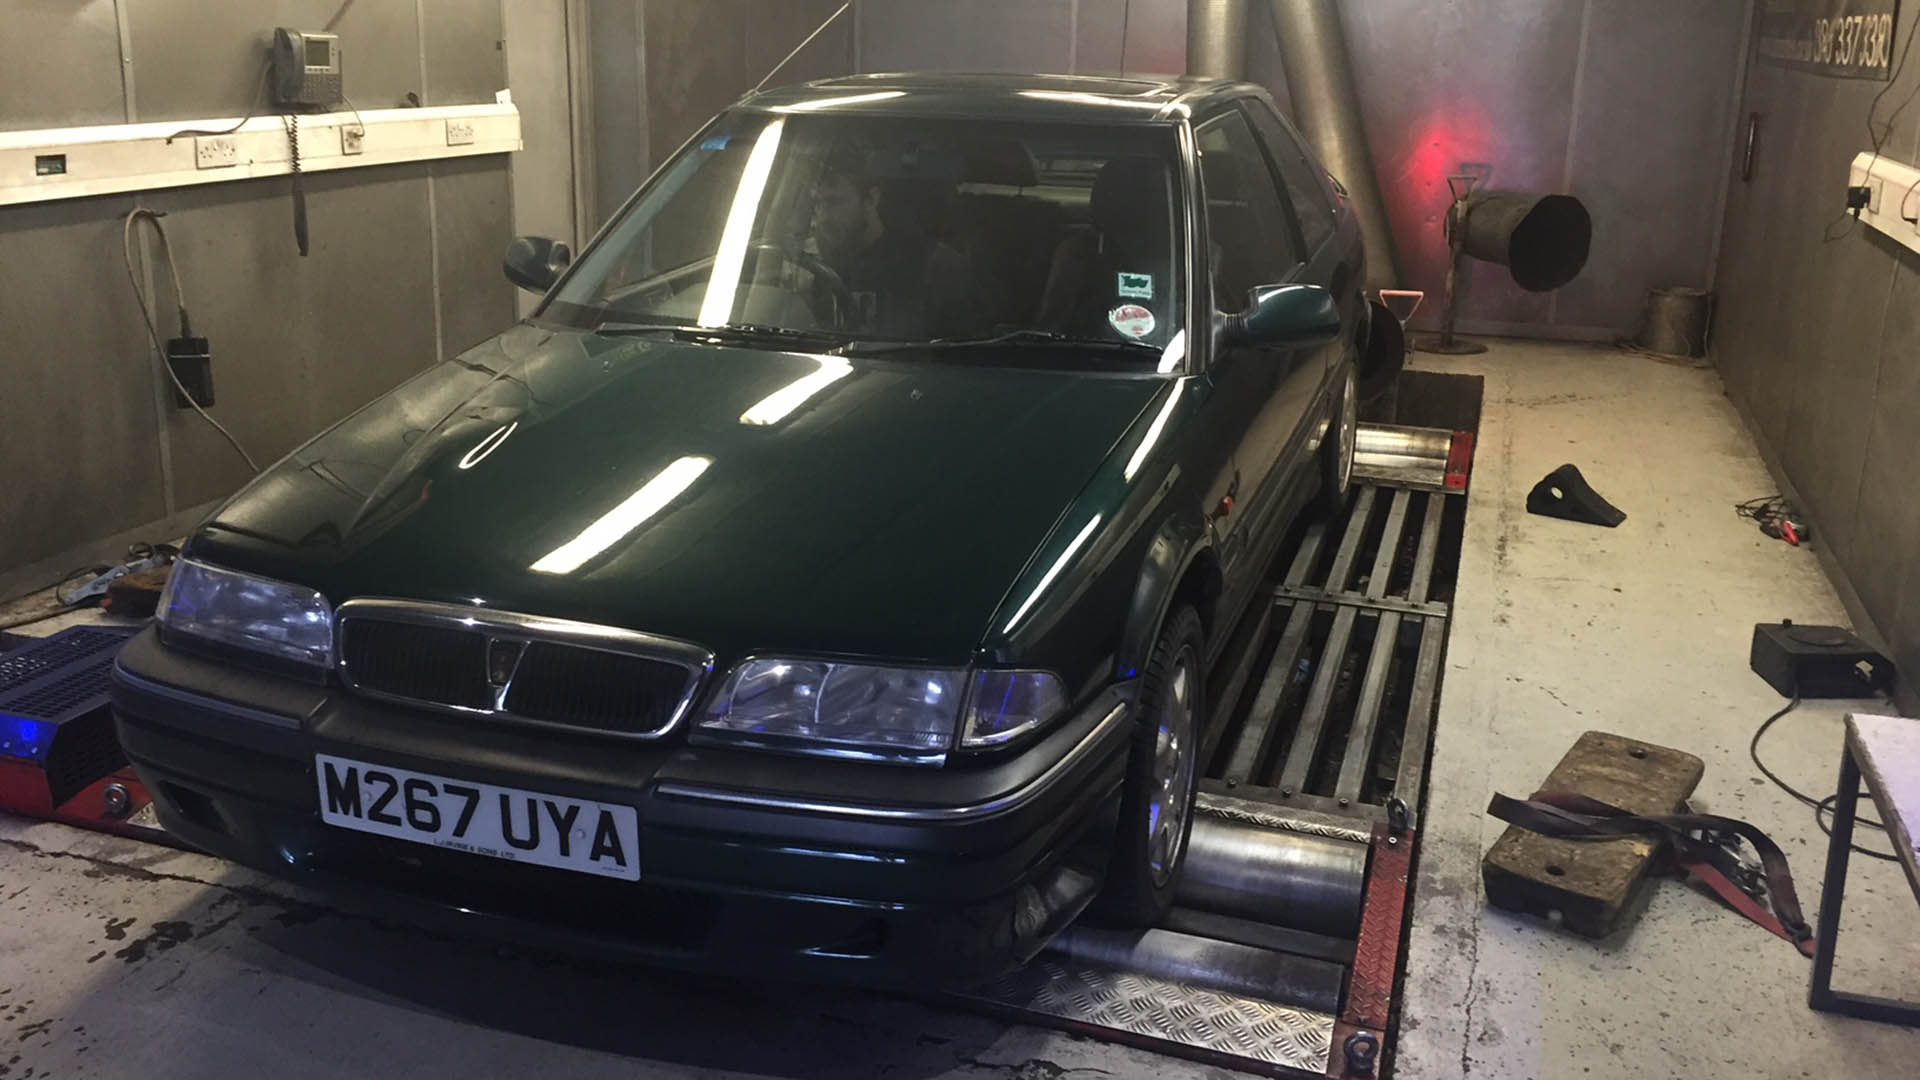 Rover 220 GSi on dyno test